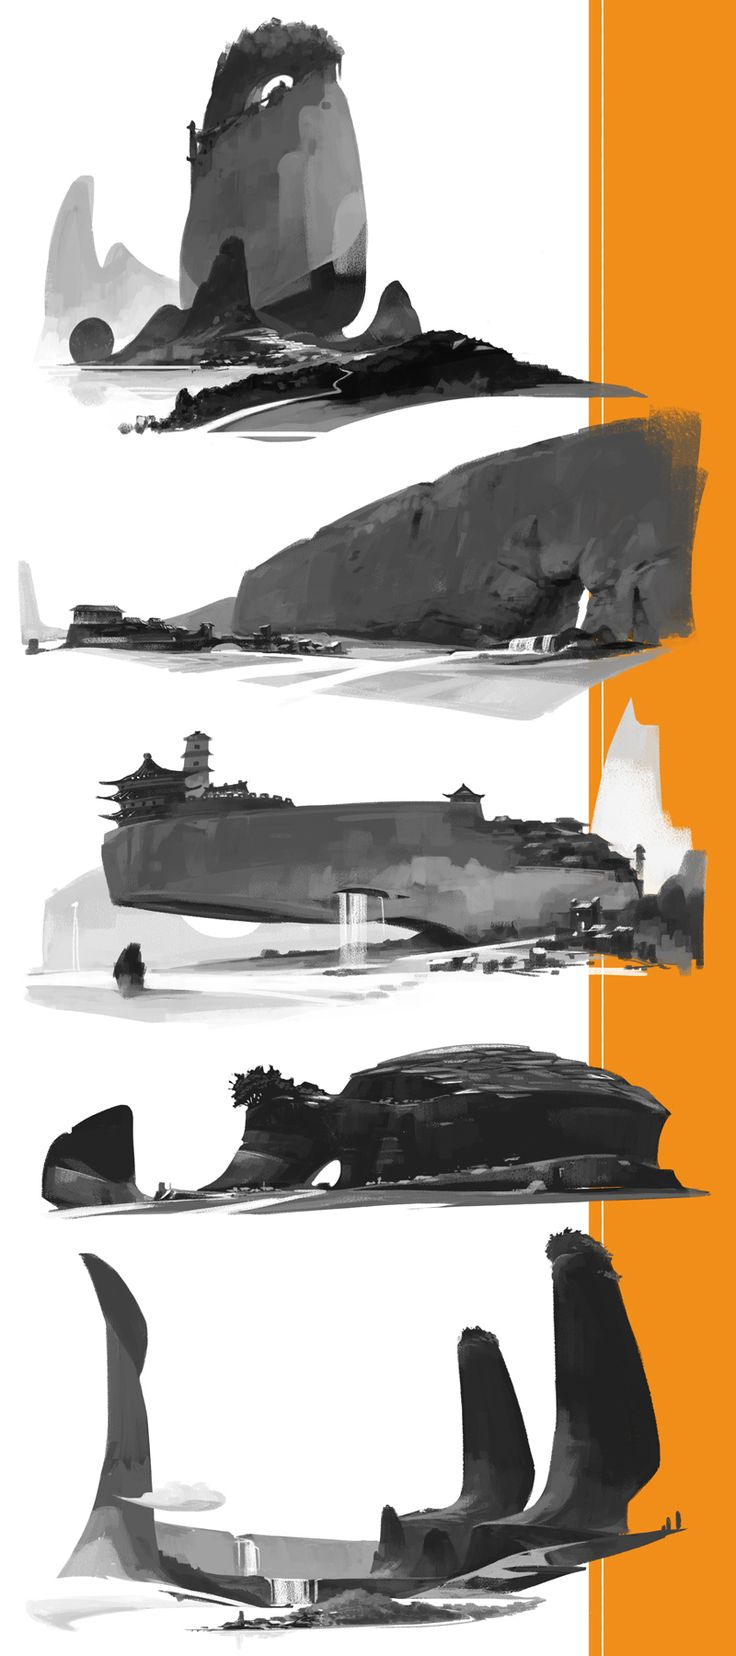 Bordertown/Town/Thumbnails by alantsuei.deviantart.com on @DeviantArt ★ || CHARACTER DESIGN REFERENCES (https://www.facebook.com/CharacterDesignReferences & https://www.pinterest.com/characterdesigh) • Love Character Design? Join the #CDChallenge (link→ https://www.facebook.com/groups/CharacterDesignChallenge) Share your unique vision of a theme, promote your art in a community of over 30.000 artists! || ★